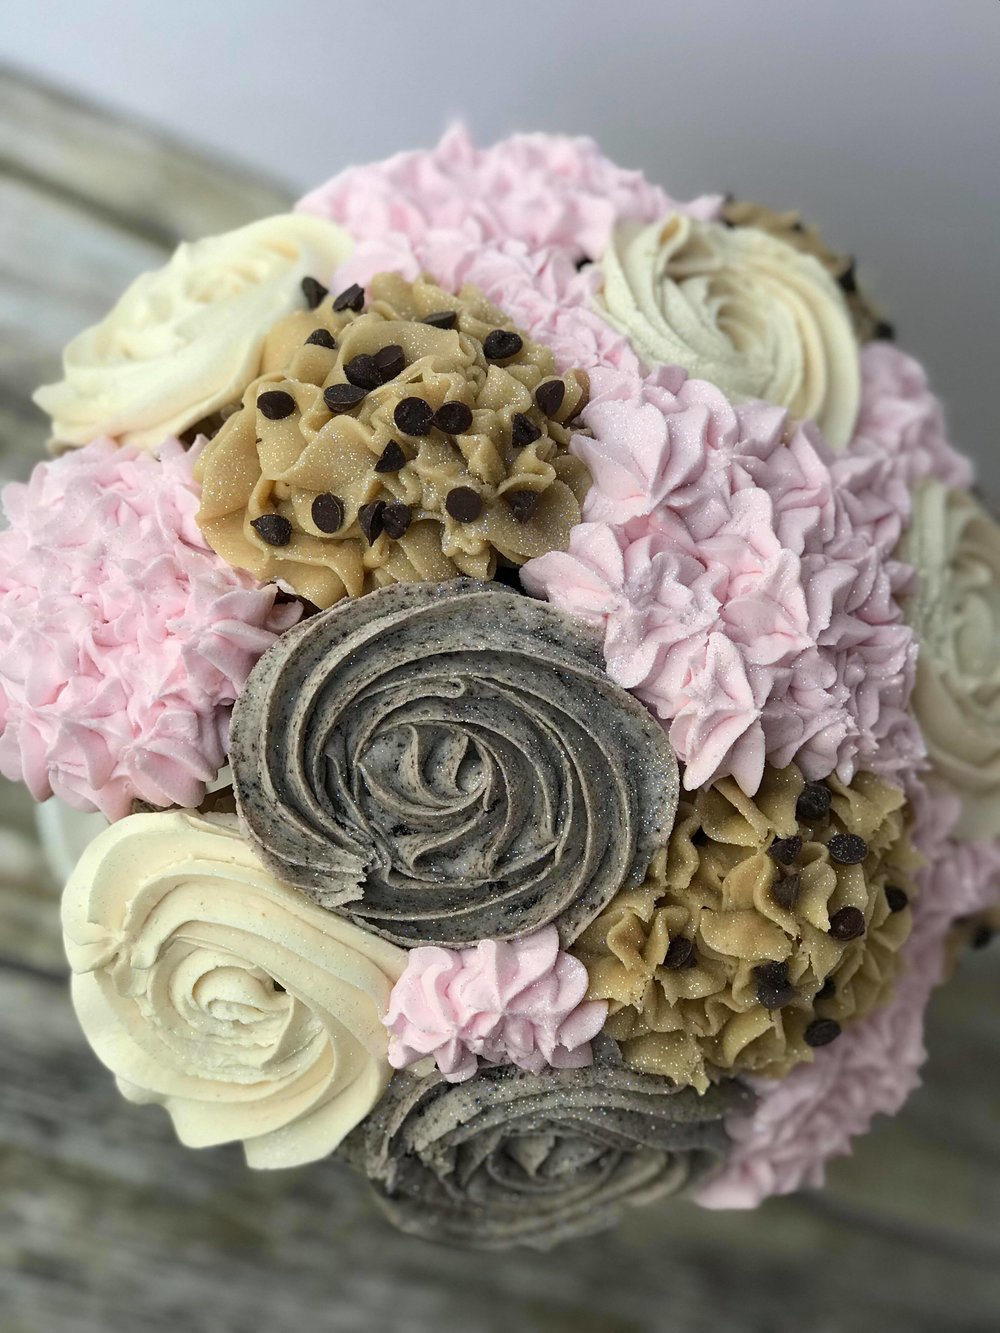 Cupcake Bouquet $50 - Large Bouquet 12-14 cupcakes